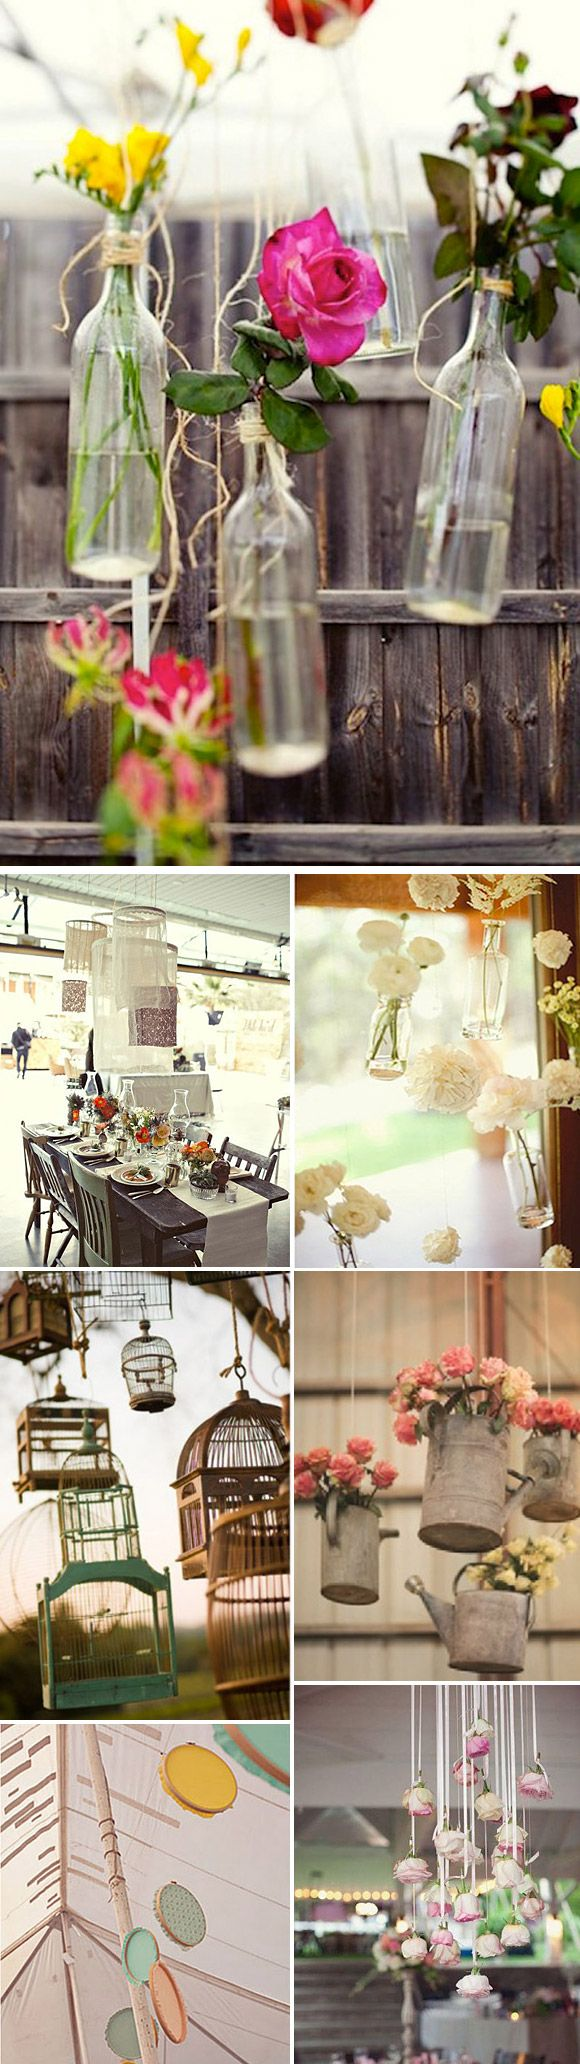 1000 images about deco on pinterest ladder battery for Arreglos de mesa para boda en jardin